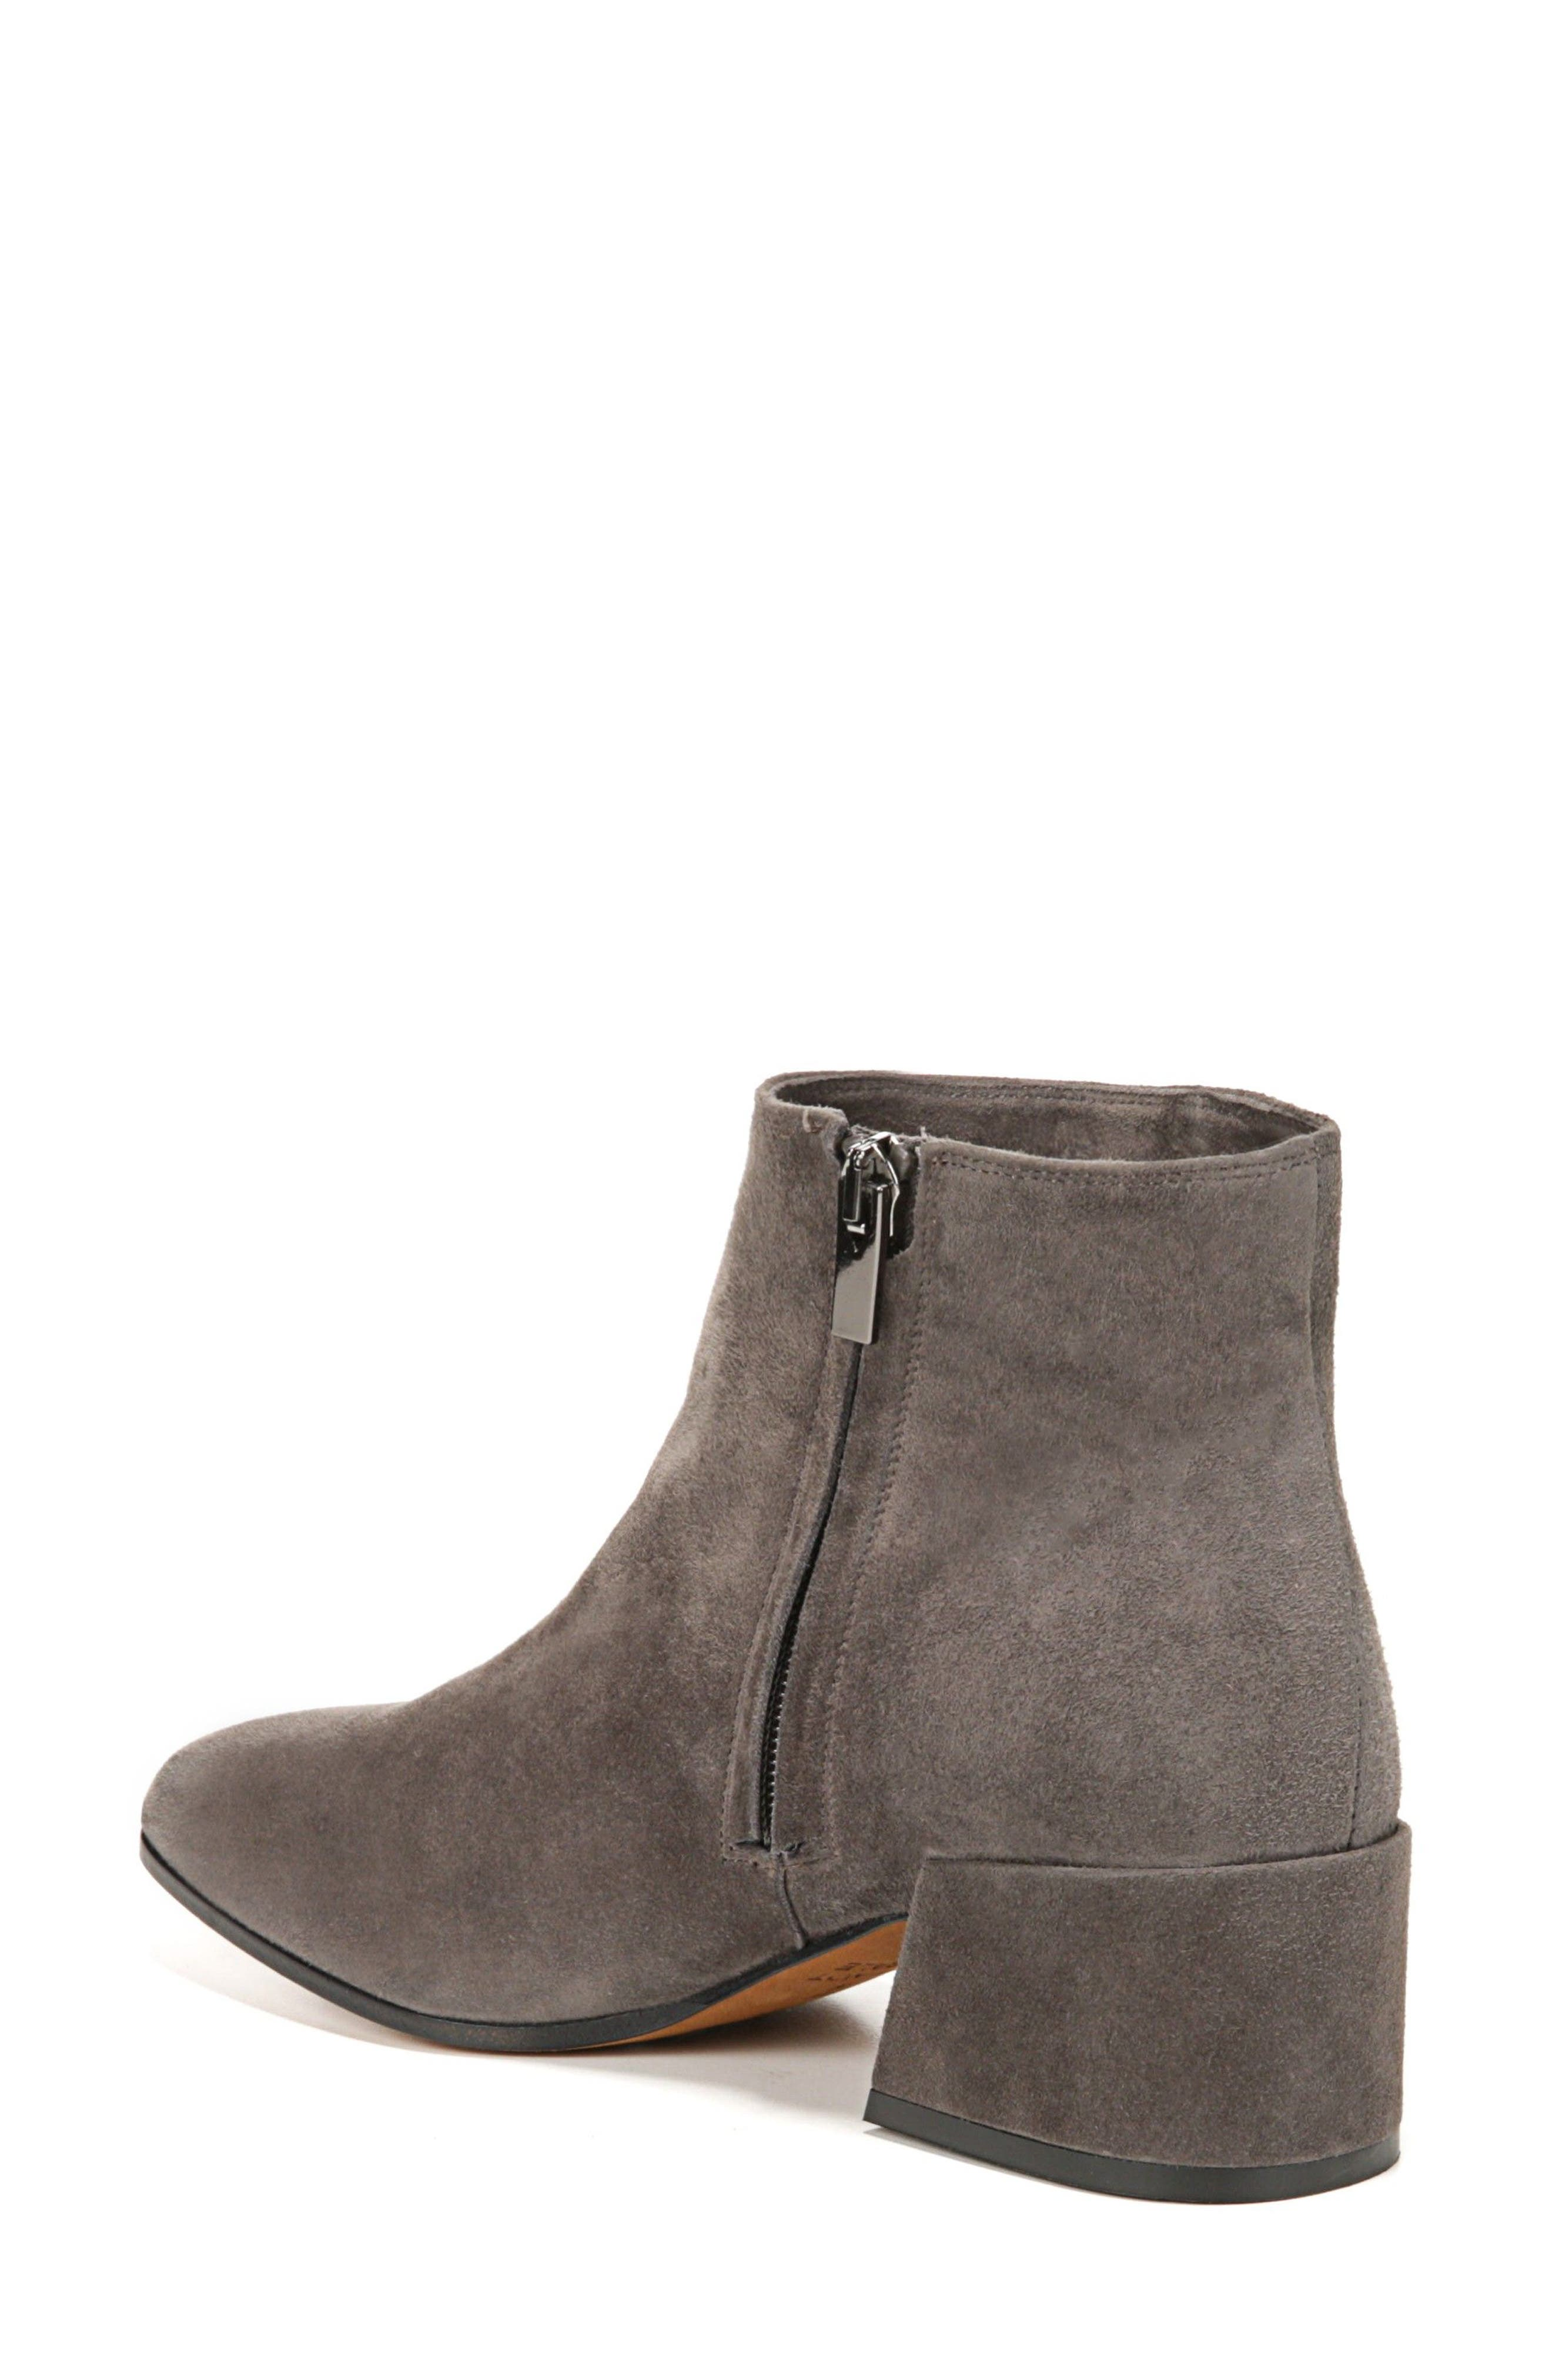 Ostend Bootie,                             Alternate thumbnail 7, color,